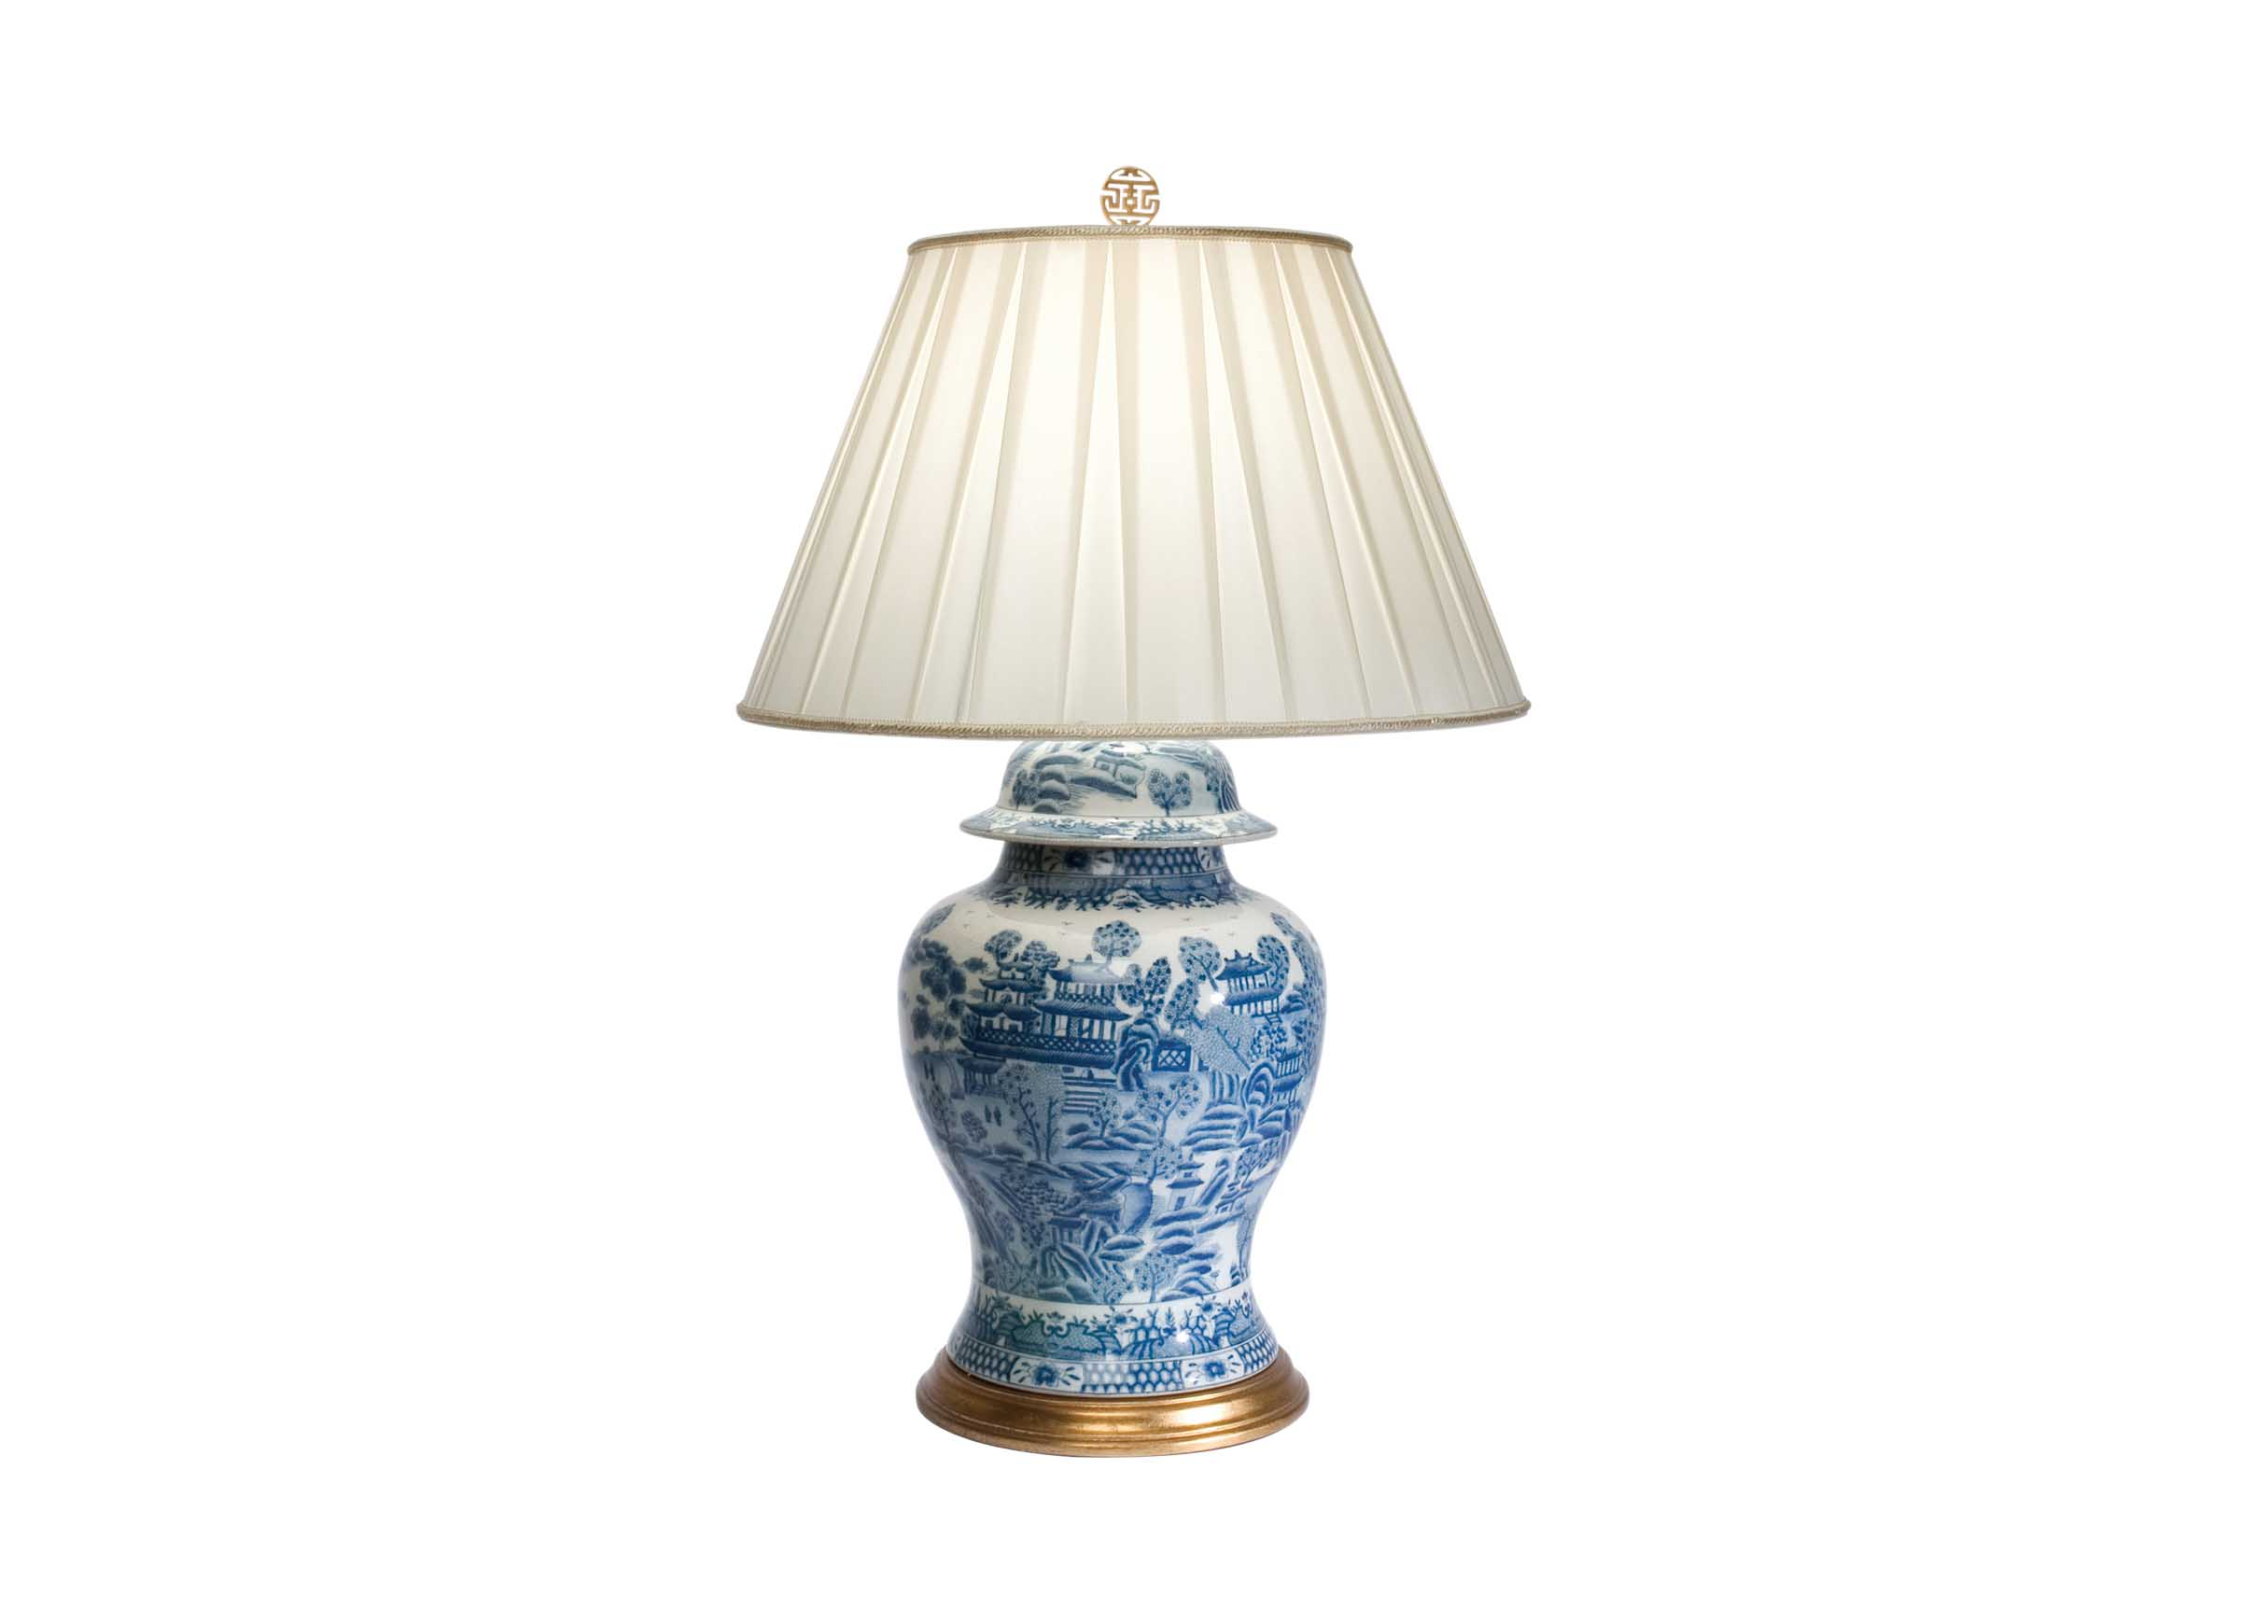 Classic Ginger Jar Table Lamp | TABLE LAMPS